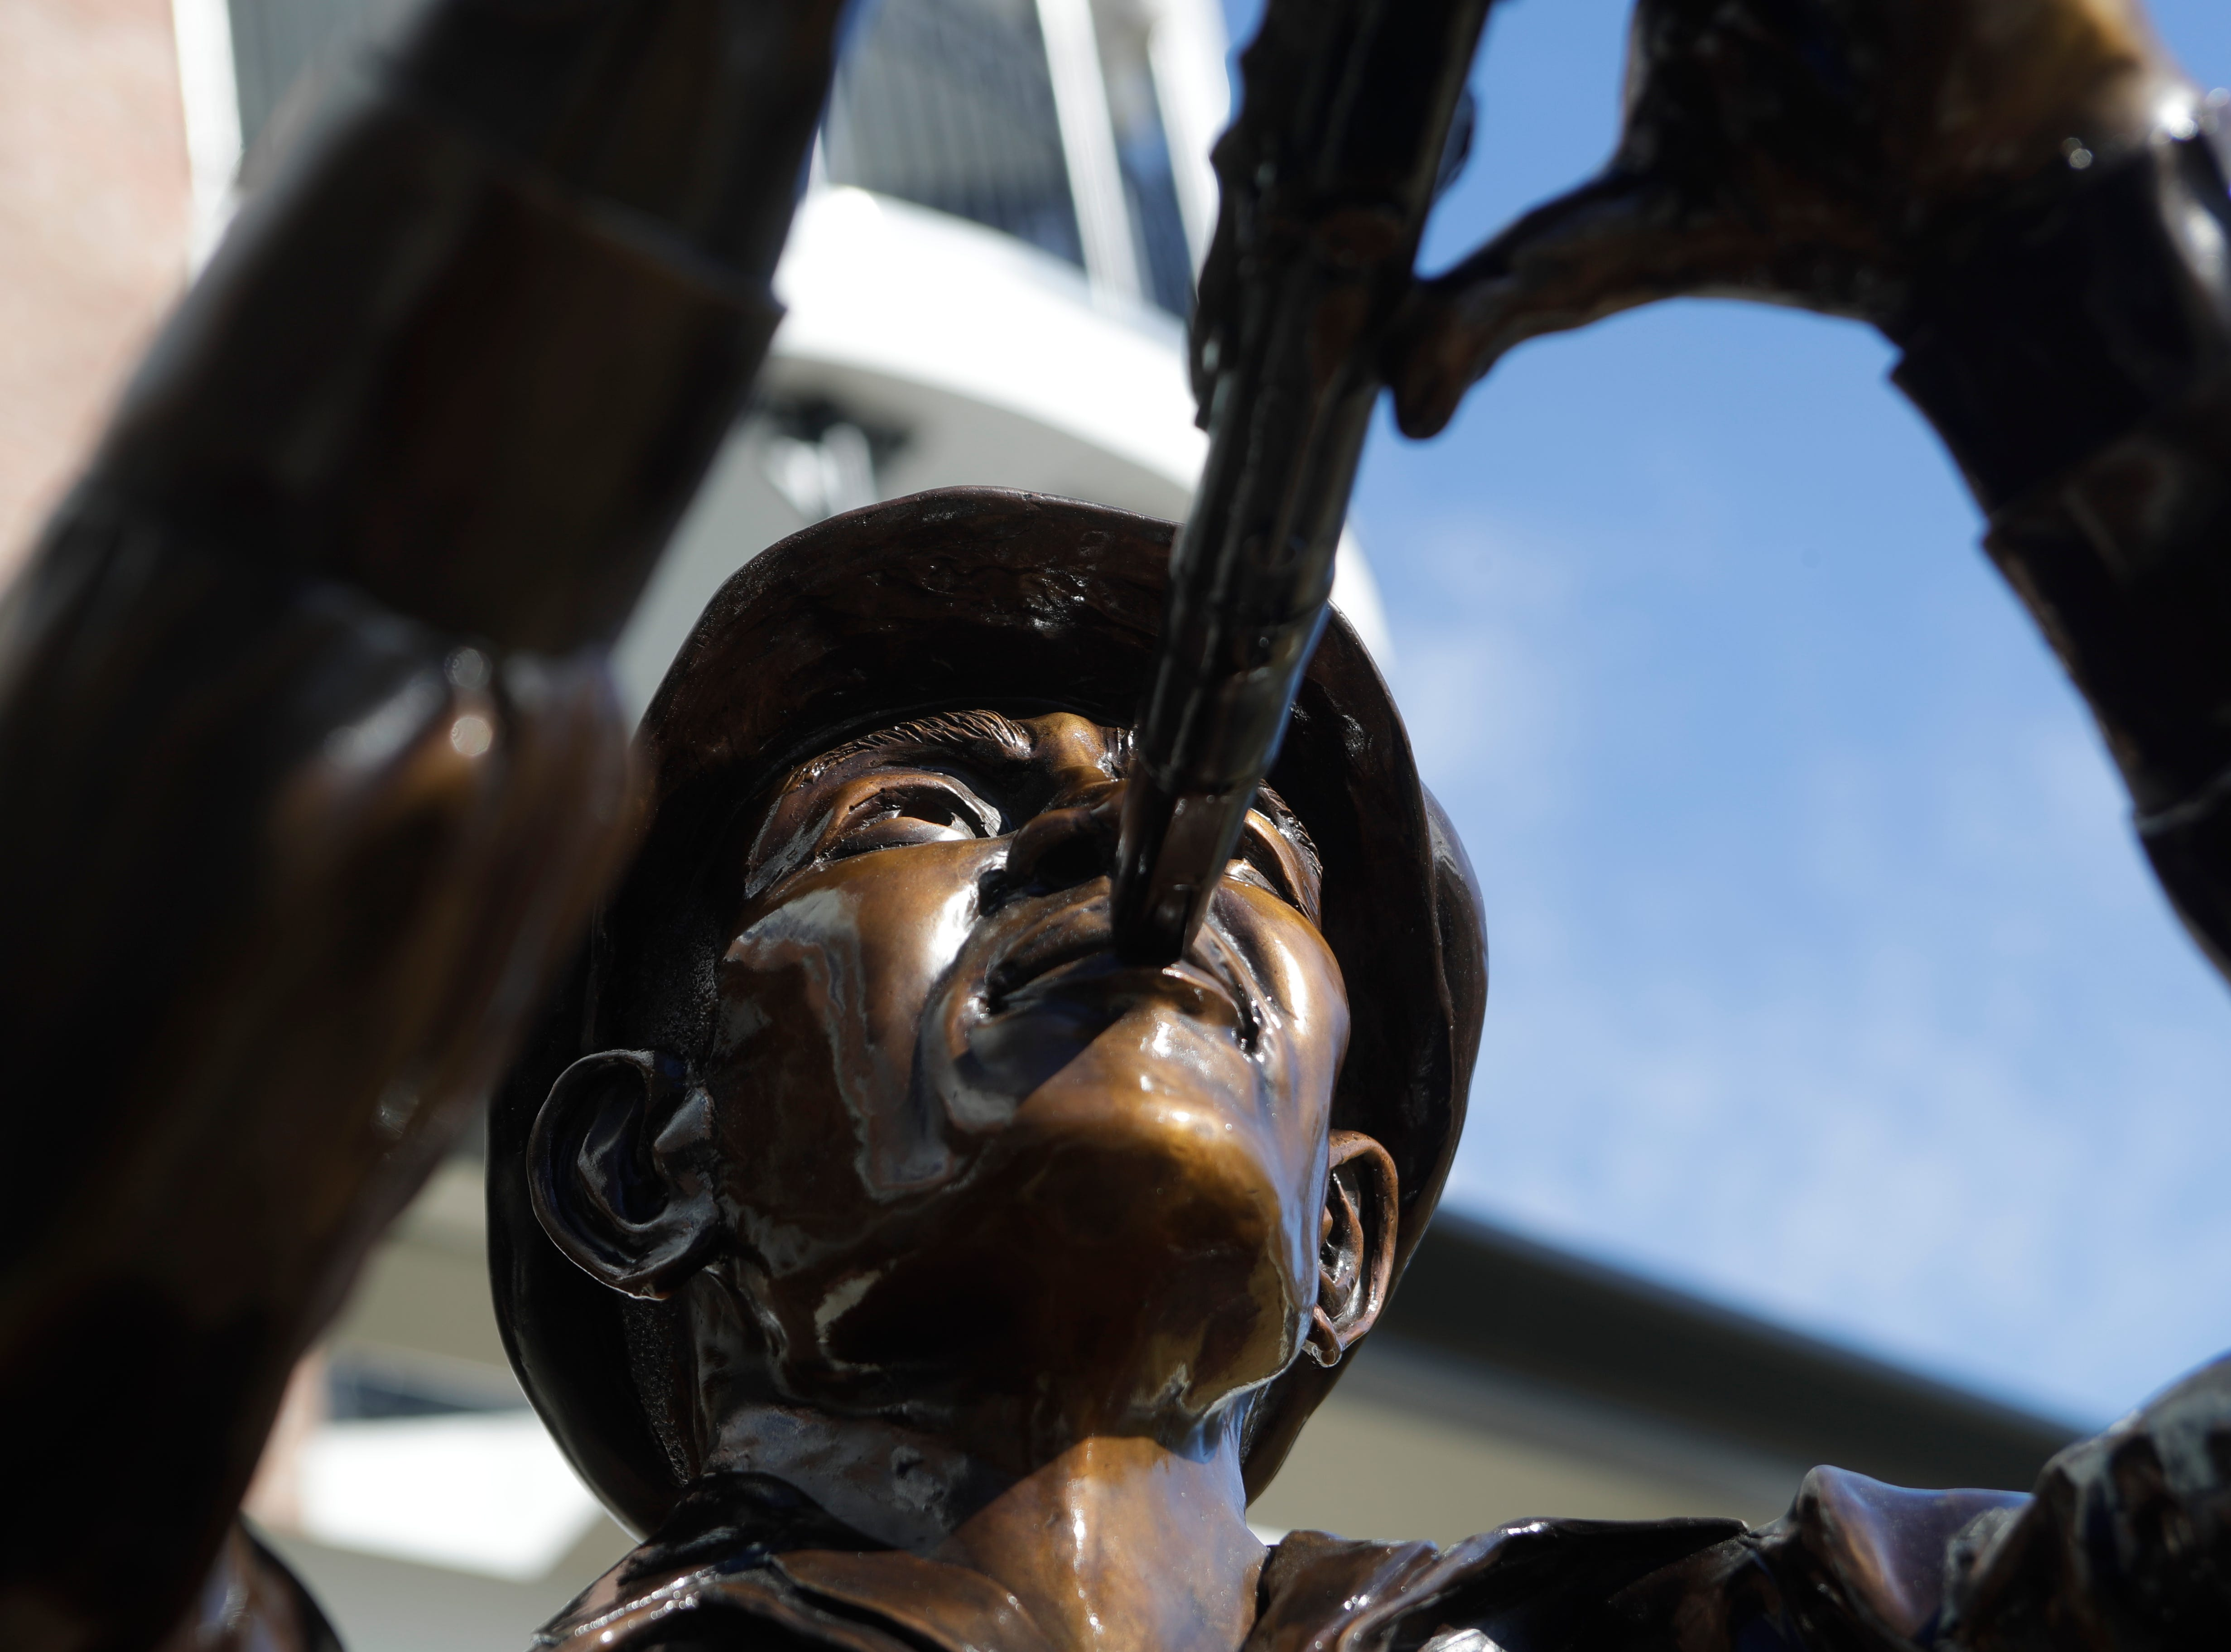 """A statue of Aurelío Angel Casañas stands in front of the Casañas Village Apartments at Frenchtown Square named after the Cuban immigrant who established his family in Tallahassee in the late 1800s. The statue portrays him playing the clarinet, which he played in a local group called """"The Tallahassee Band."""""""